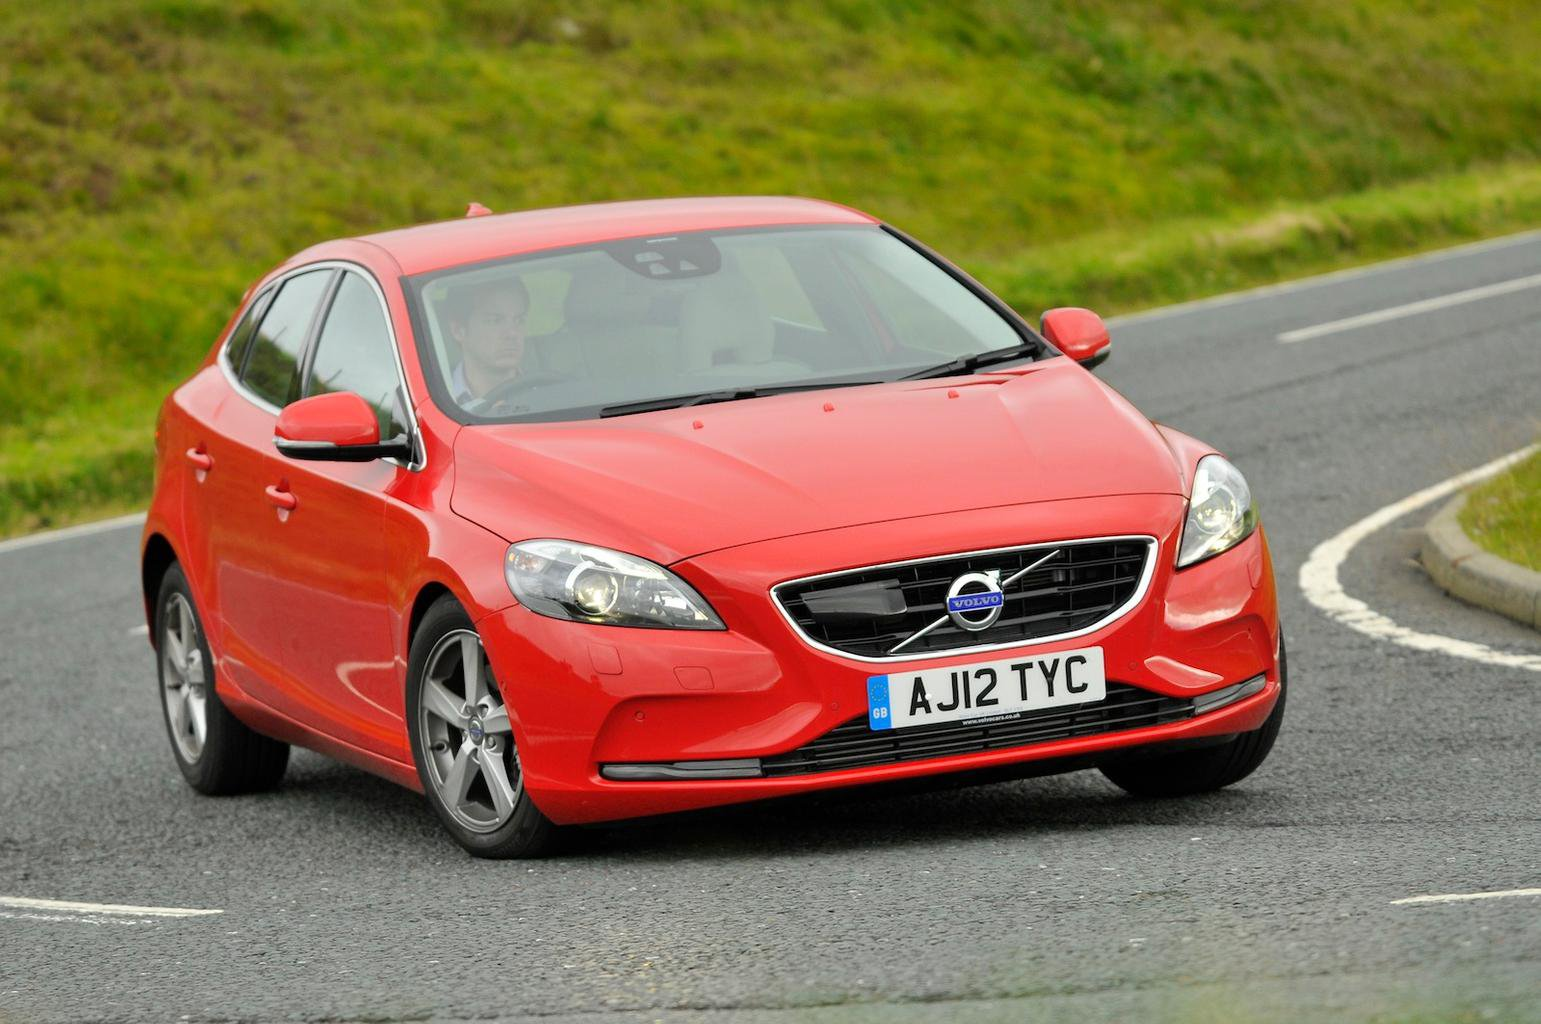 Used car of the week: Volvo V40